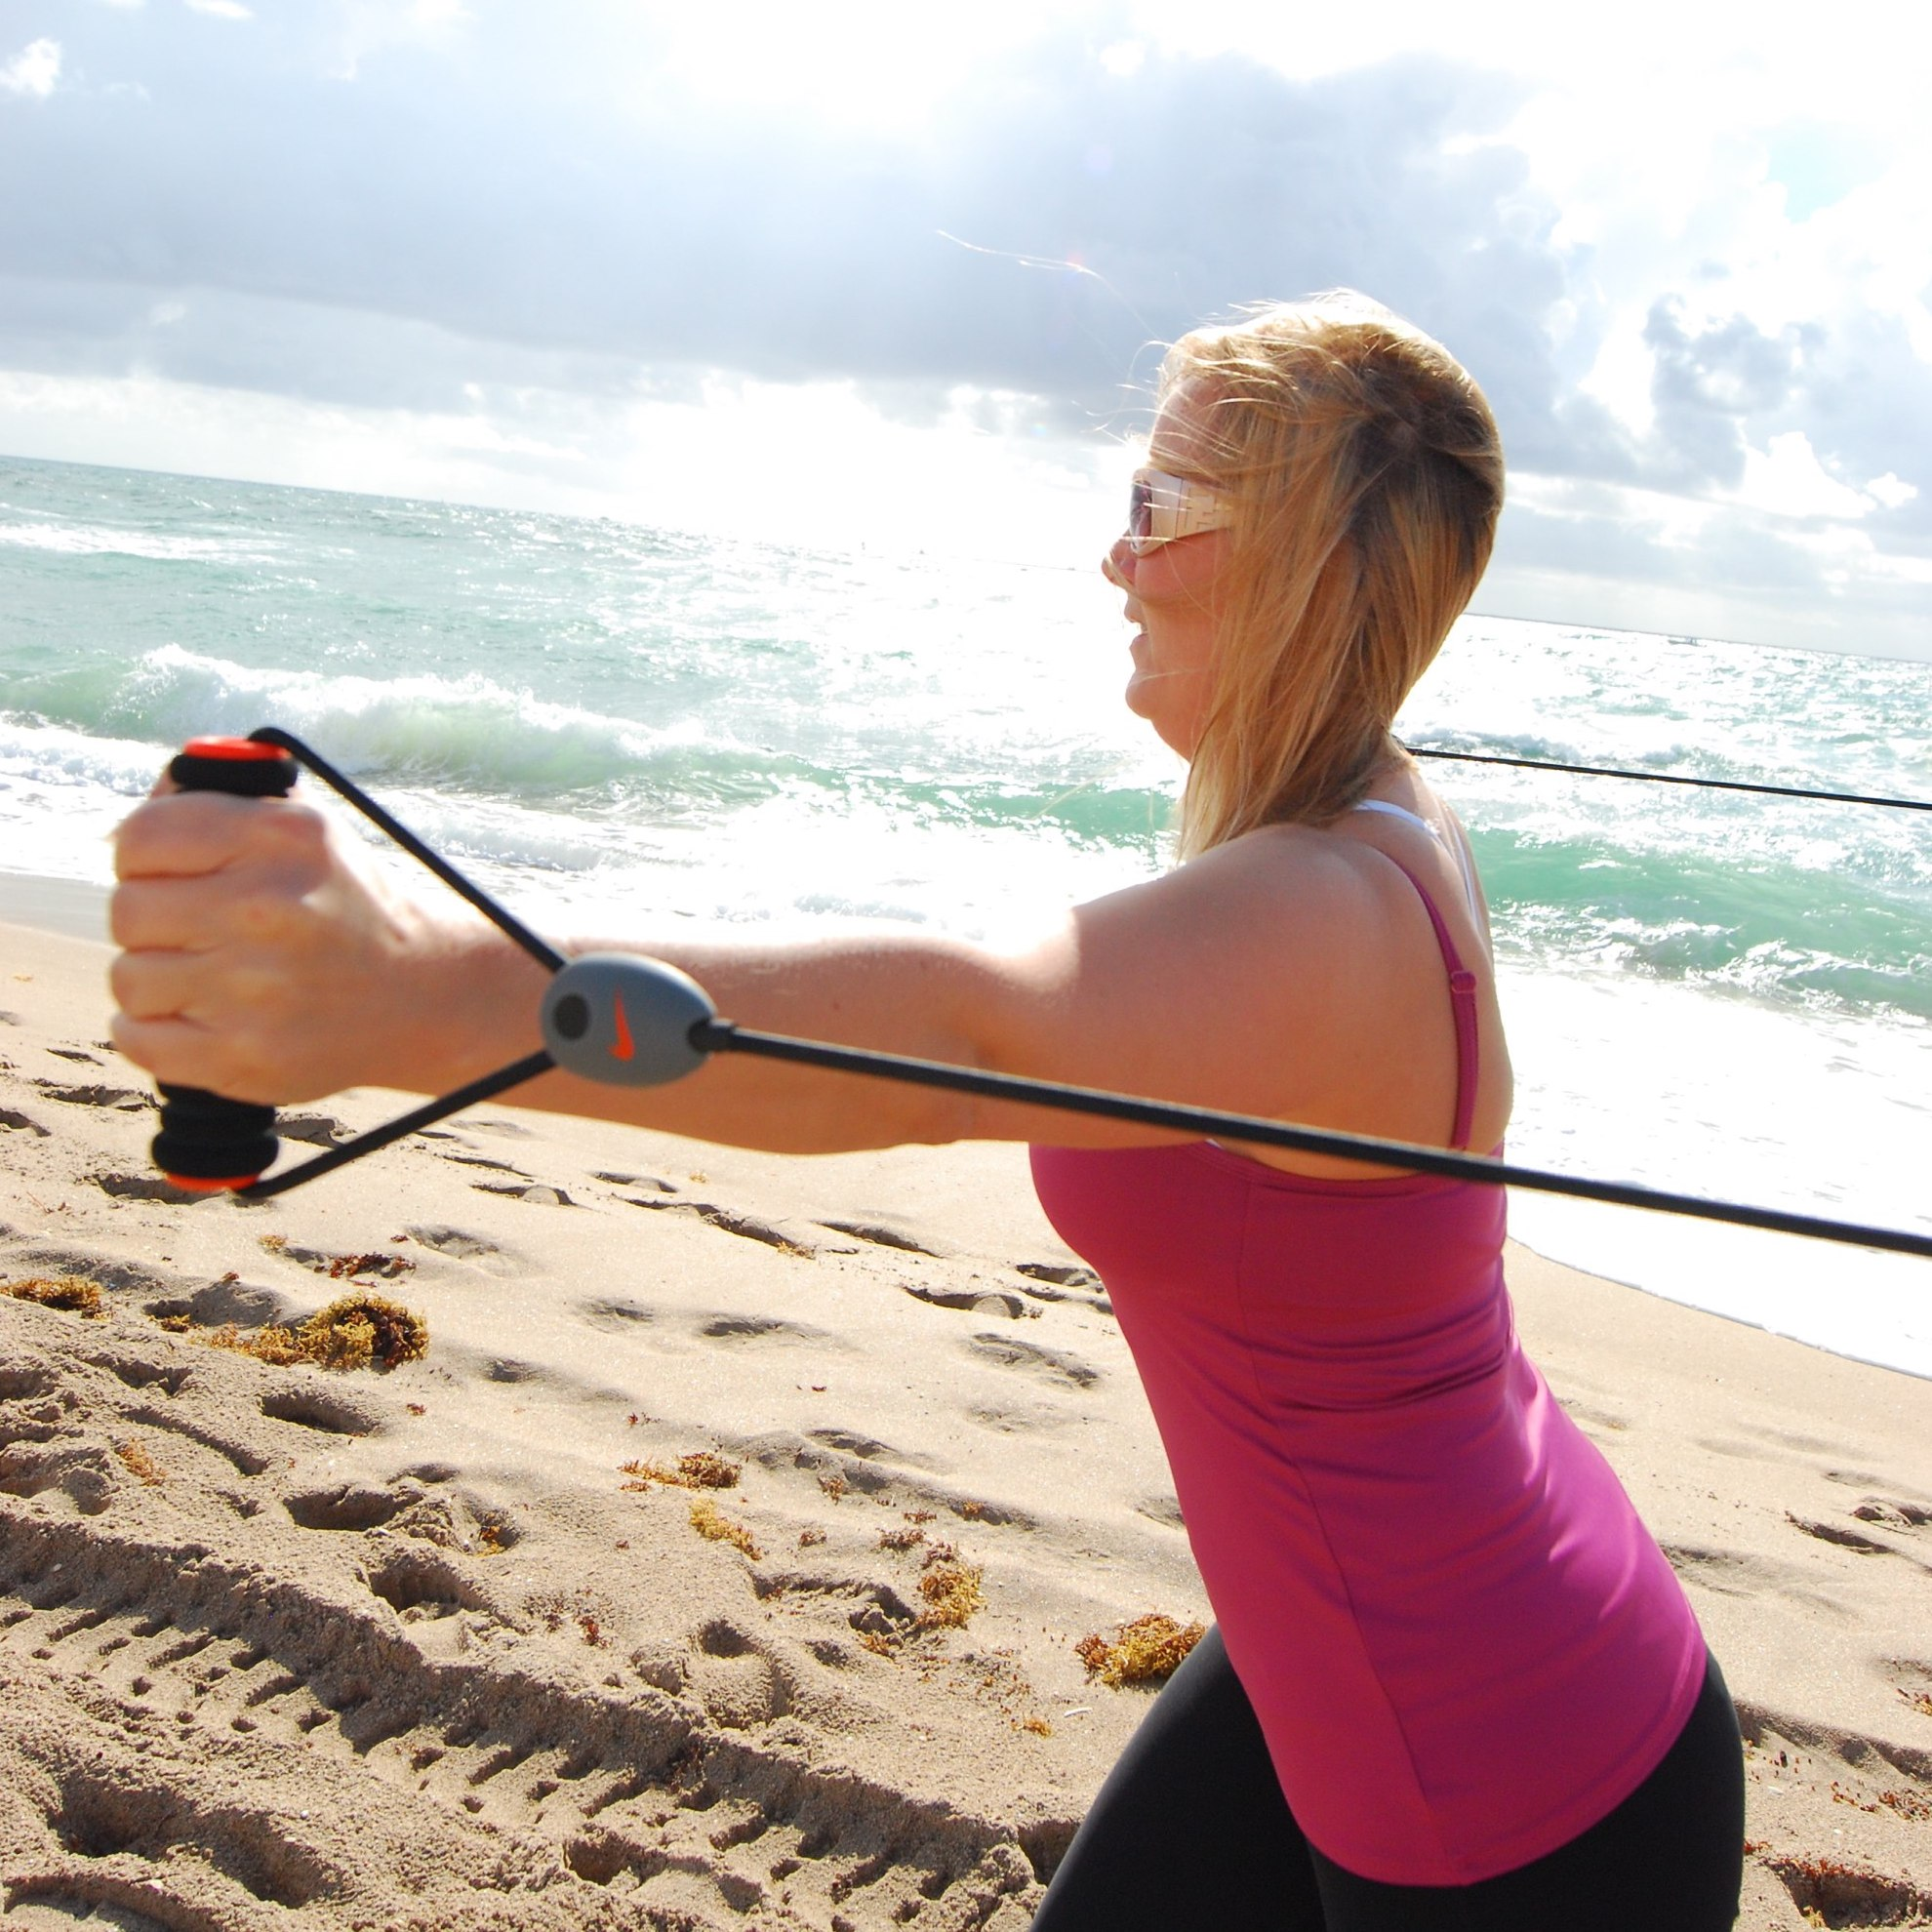 Resistance Band training session at beach.